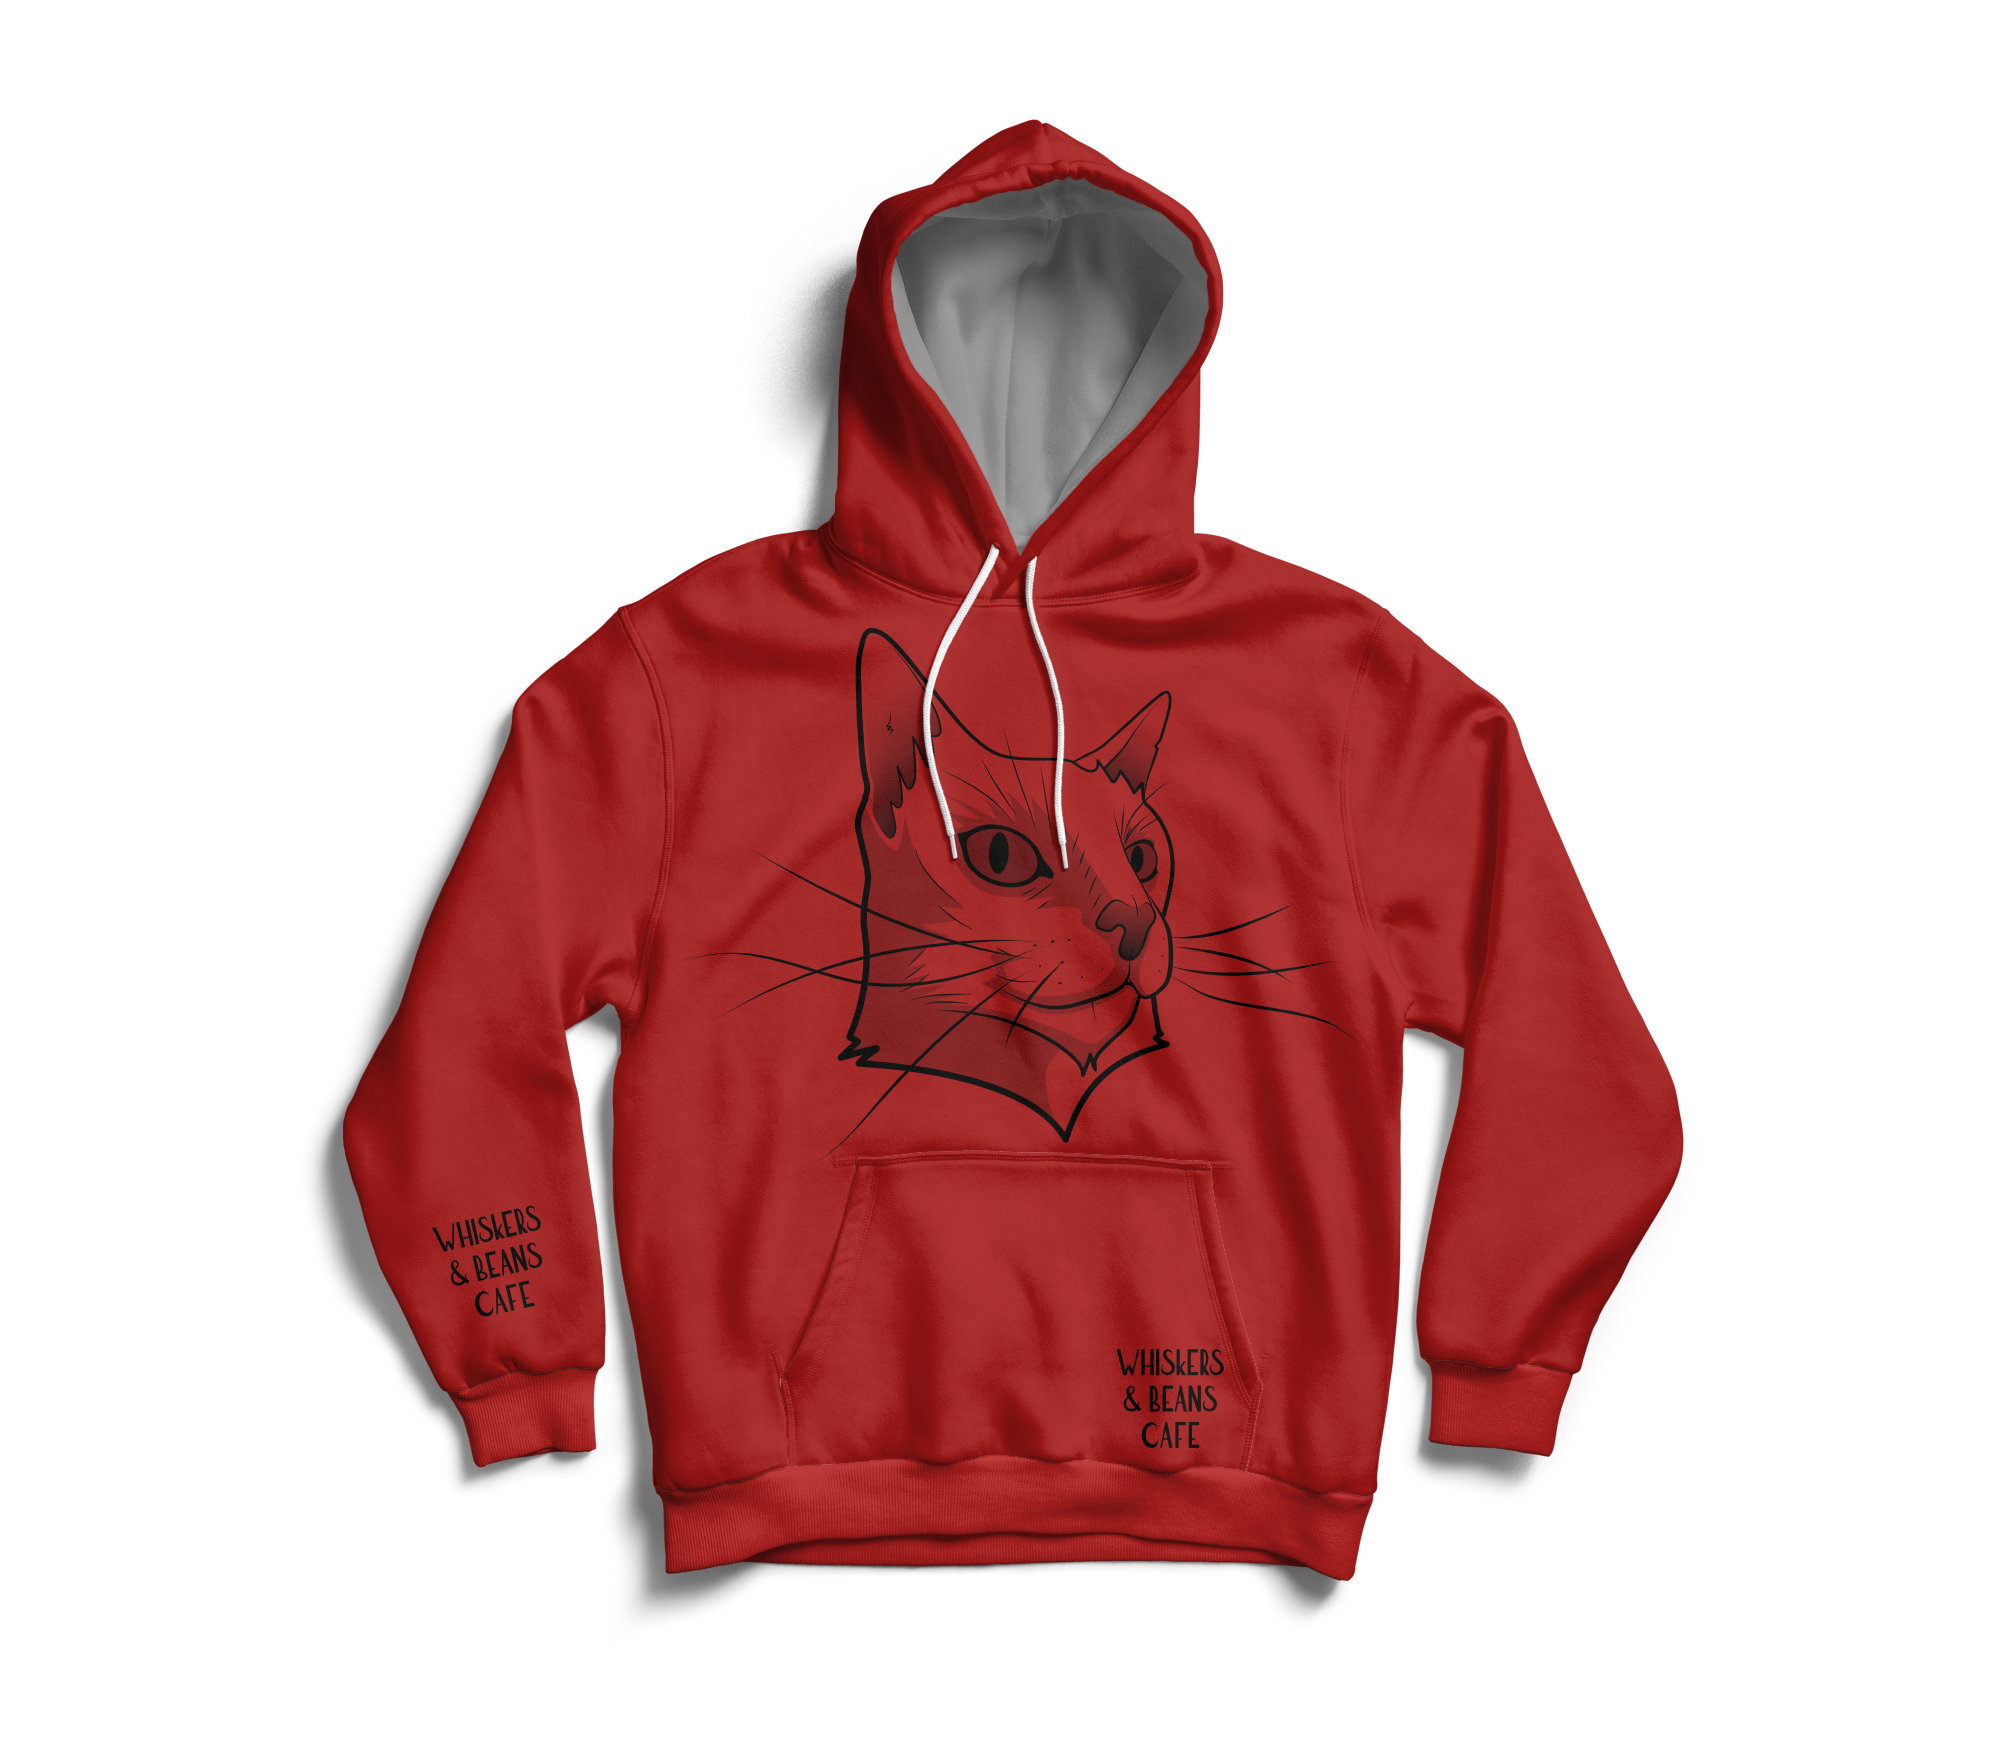 Whiskers & Beans Cafe Hoodie - red